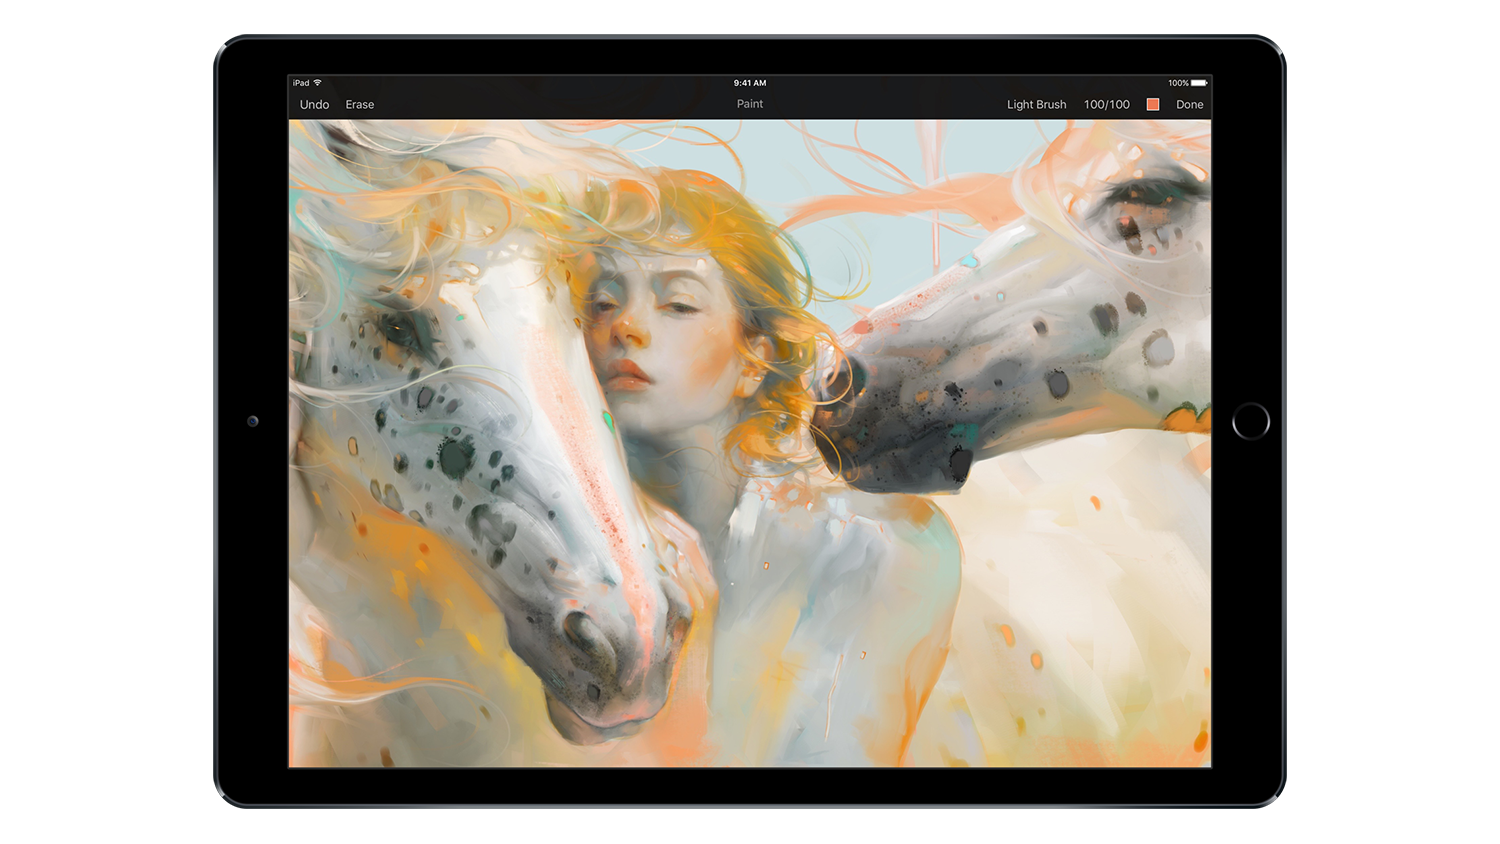 Drawing ipad artwork. Pixelmator is here with